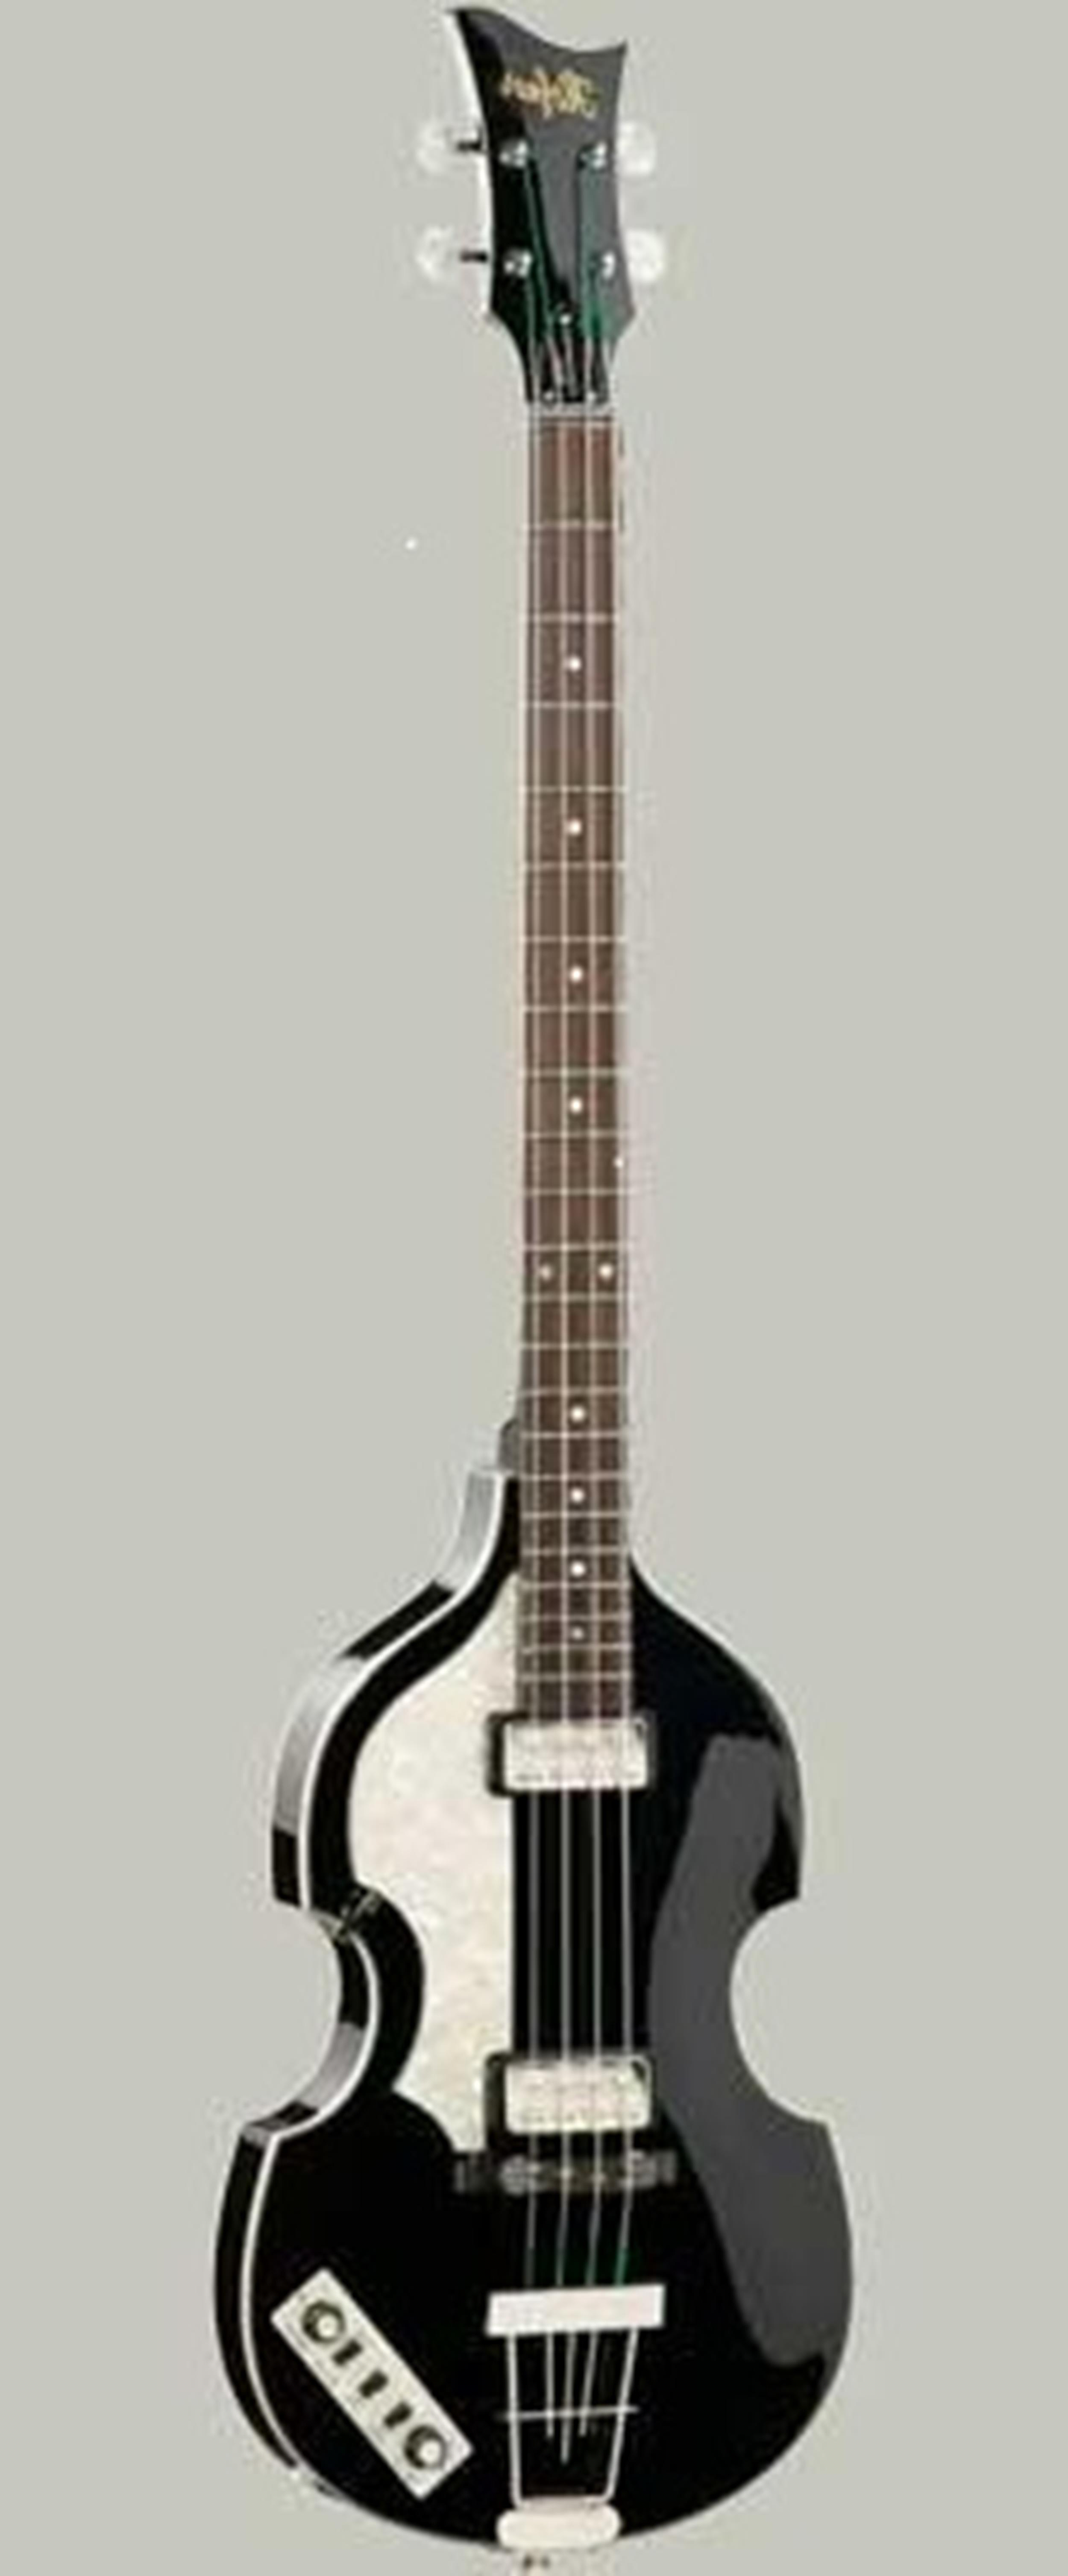 HOFNER HCT 500/1 L CONTEMPORARY VIOLIN BEATLES BASS BLACK MANCINO LEFT